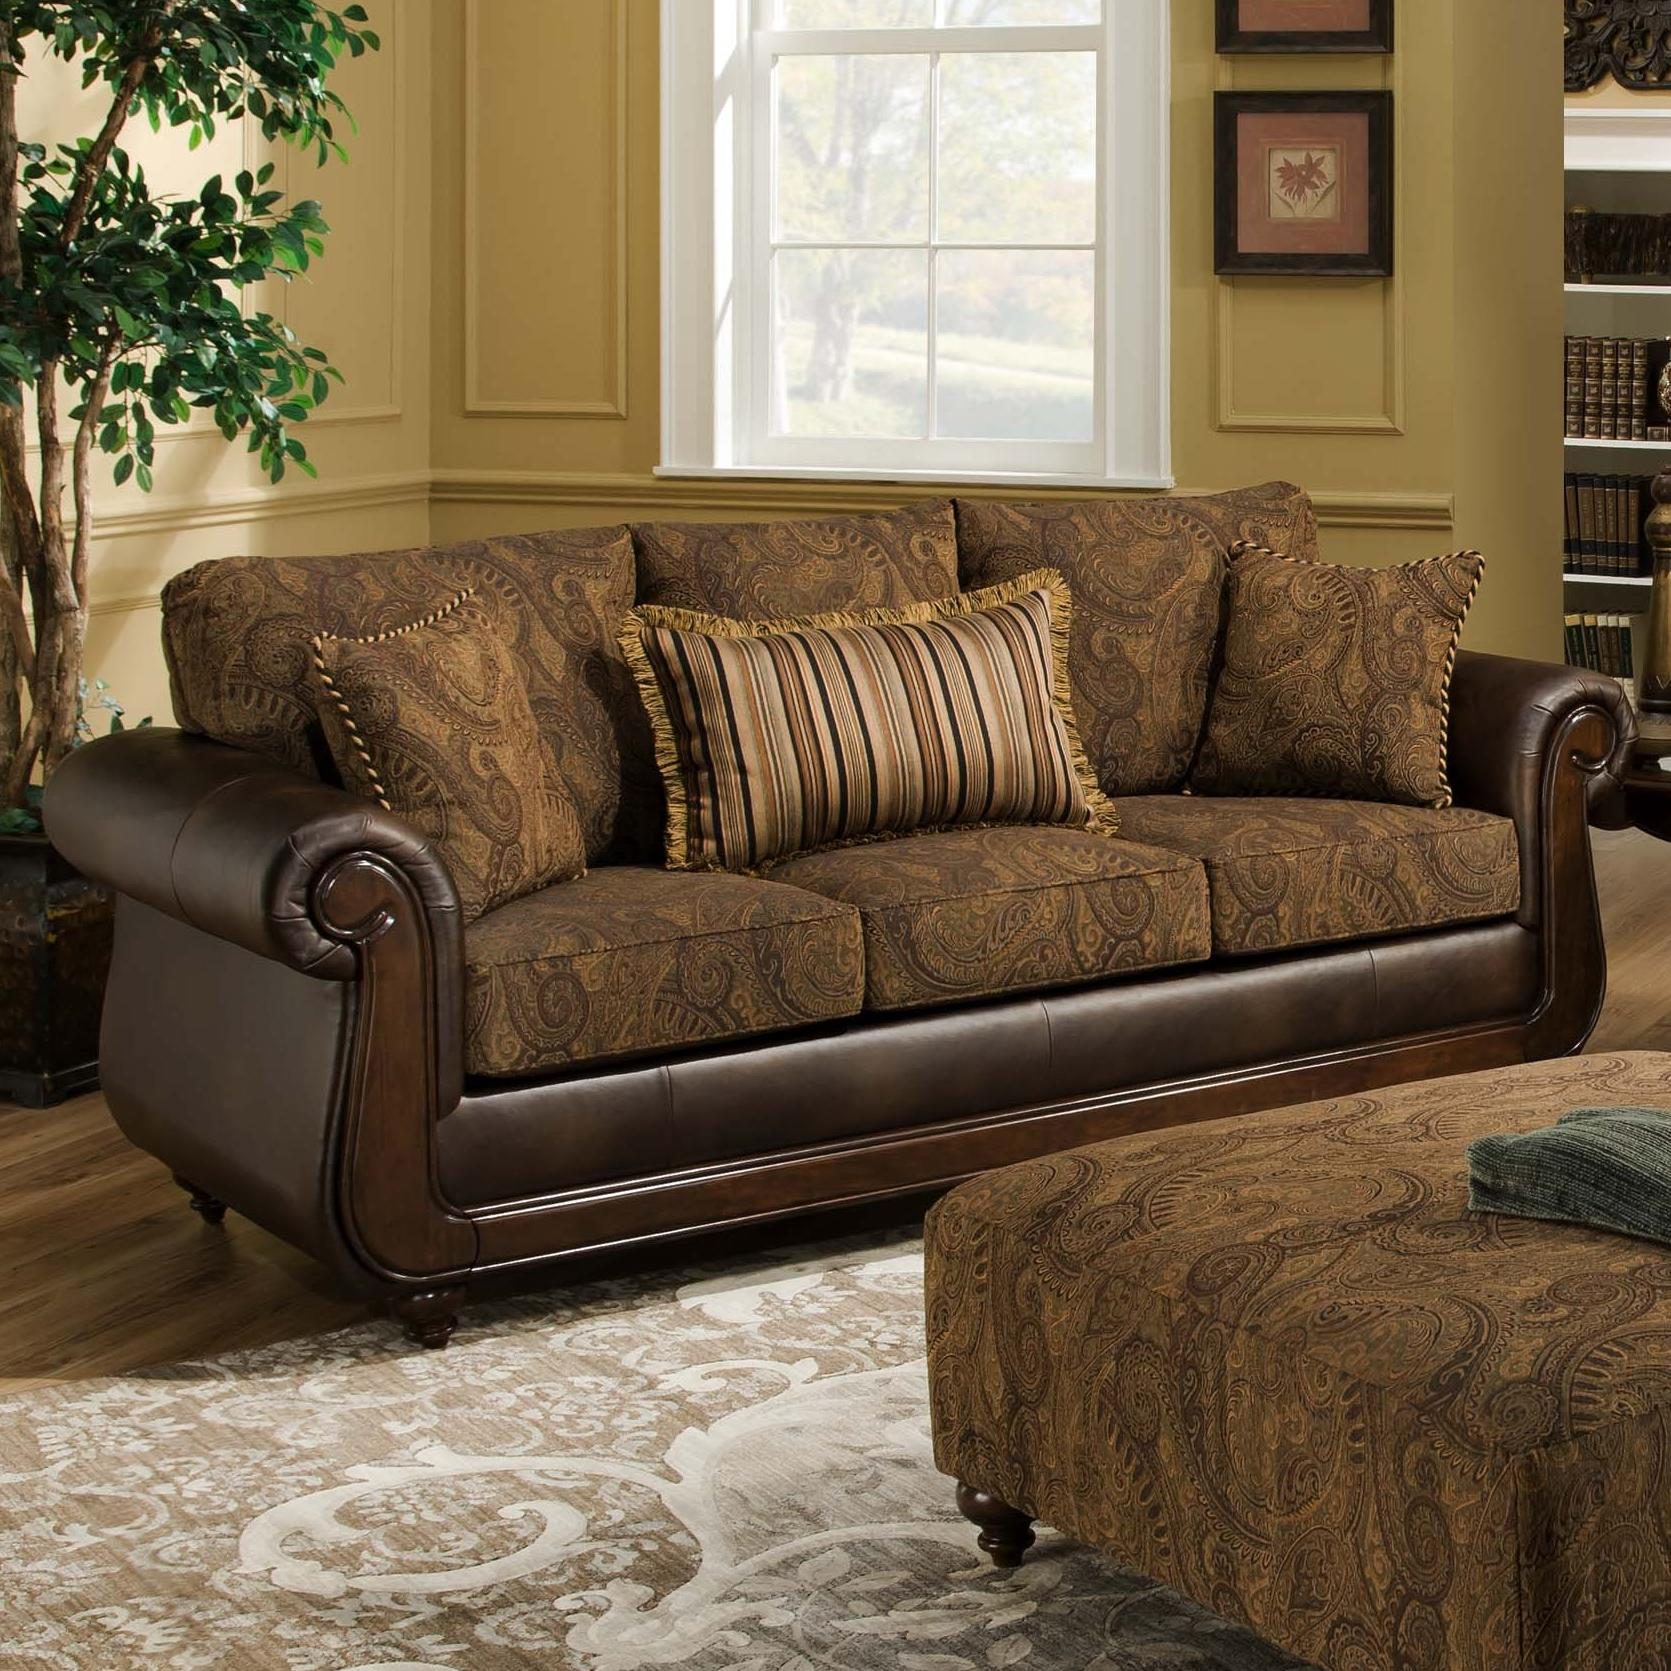 American furniture 5850 sofa with exposed wood in classic for Classic style sofa